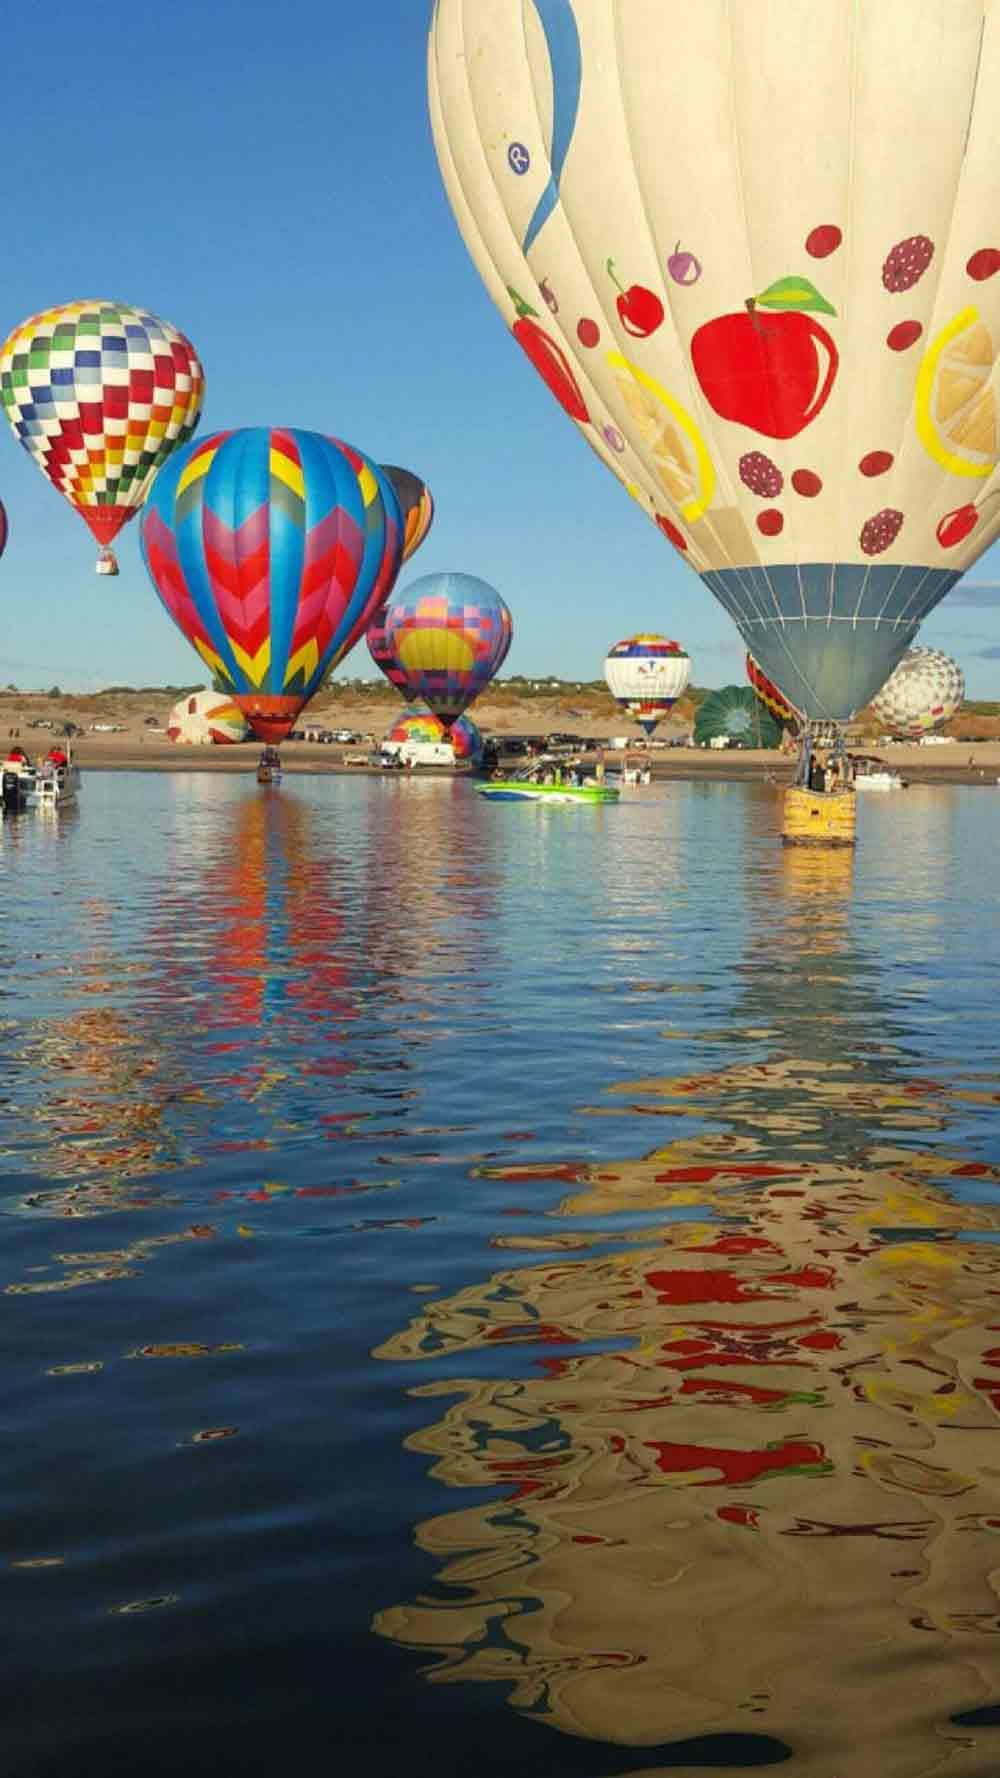 Elephant Butte Balloon Regatta - photo by Haley Woolf